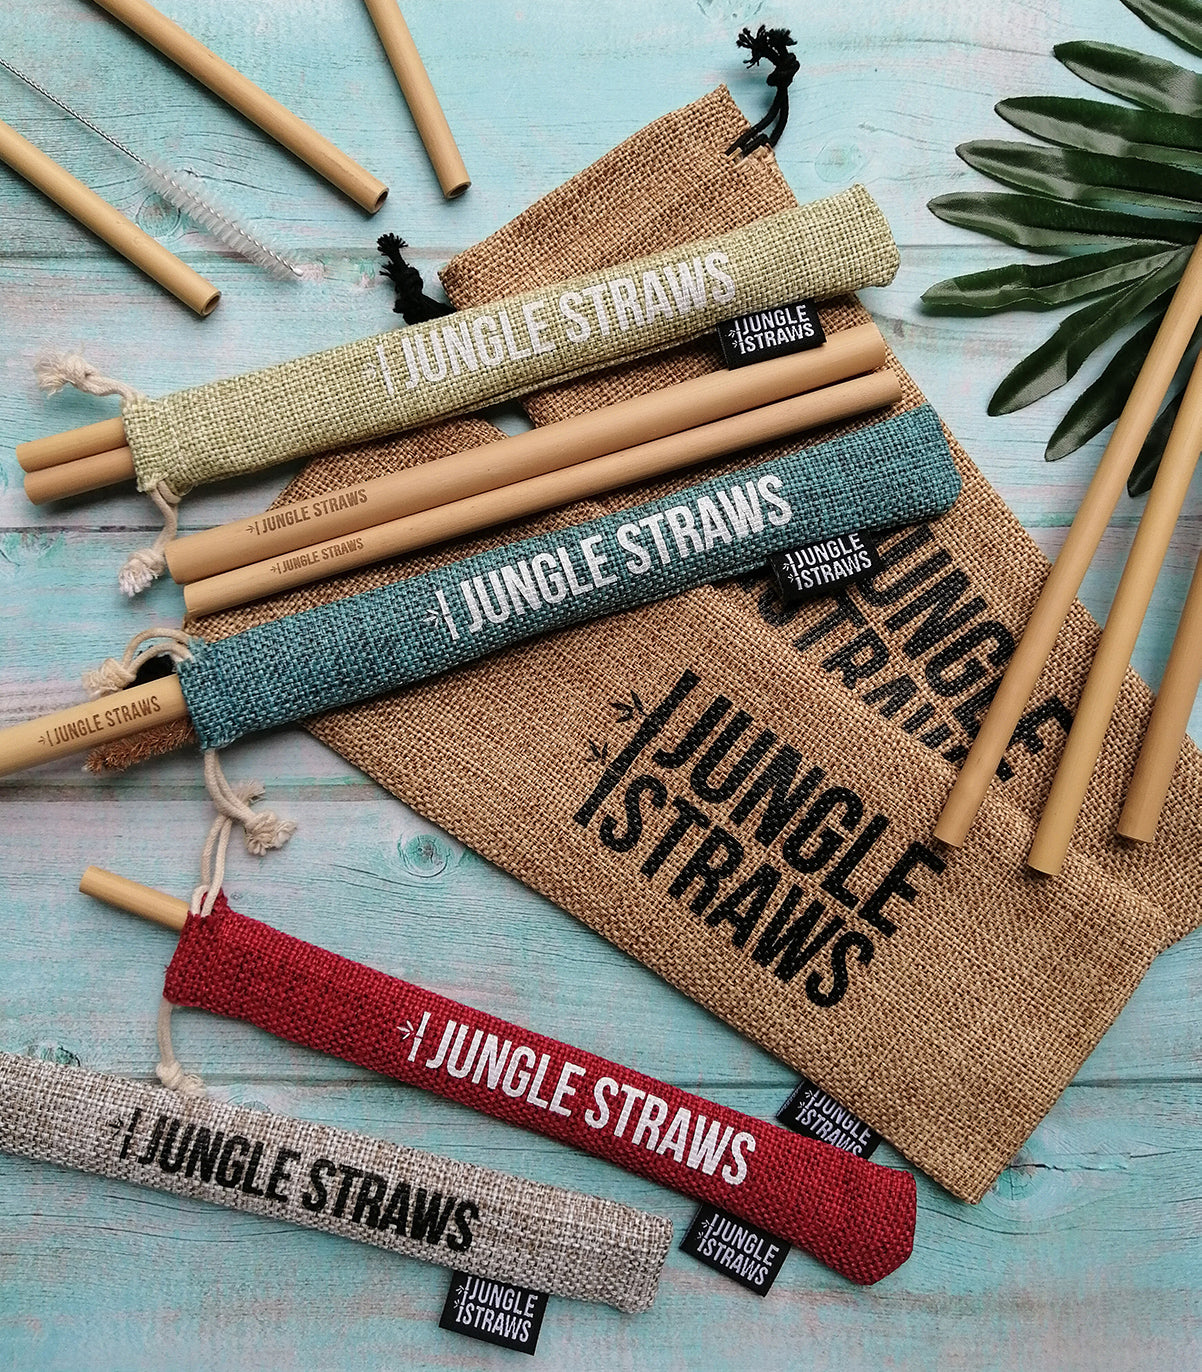 Sustainable bamboo straws handmade in vietnam